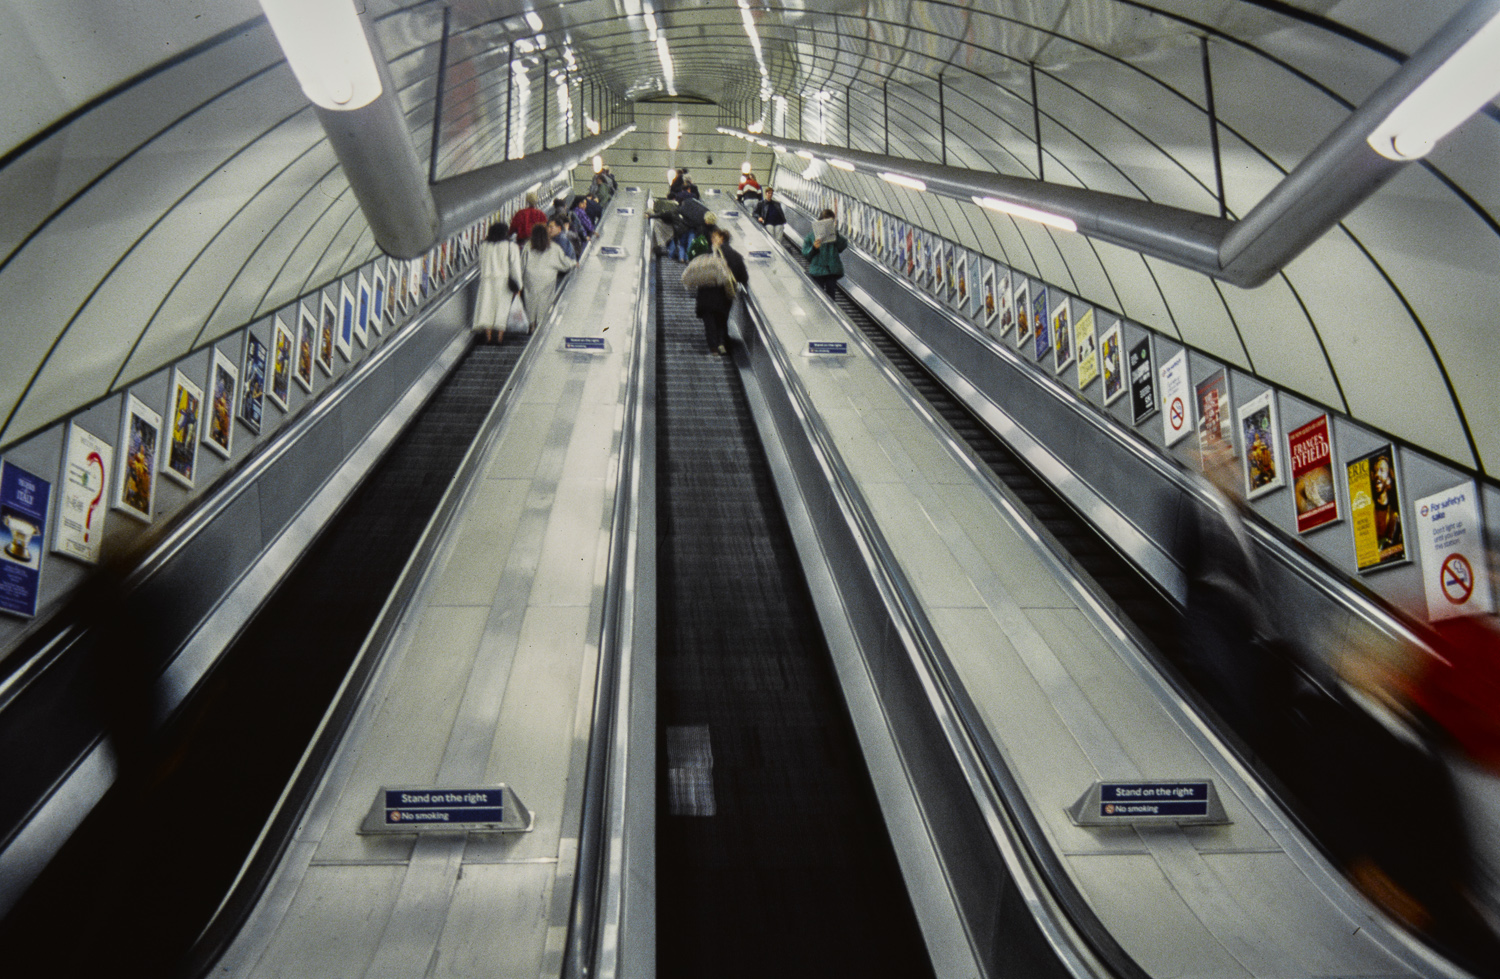 Escalator - London, 1990